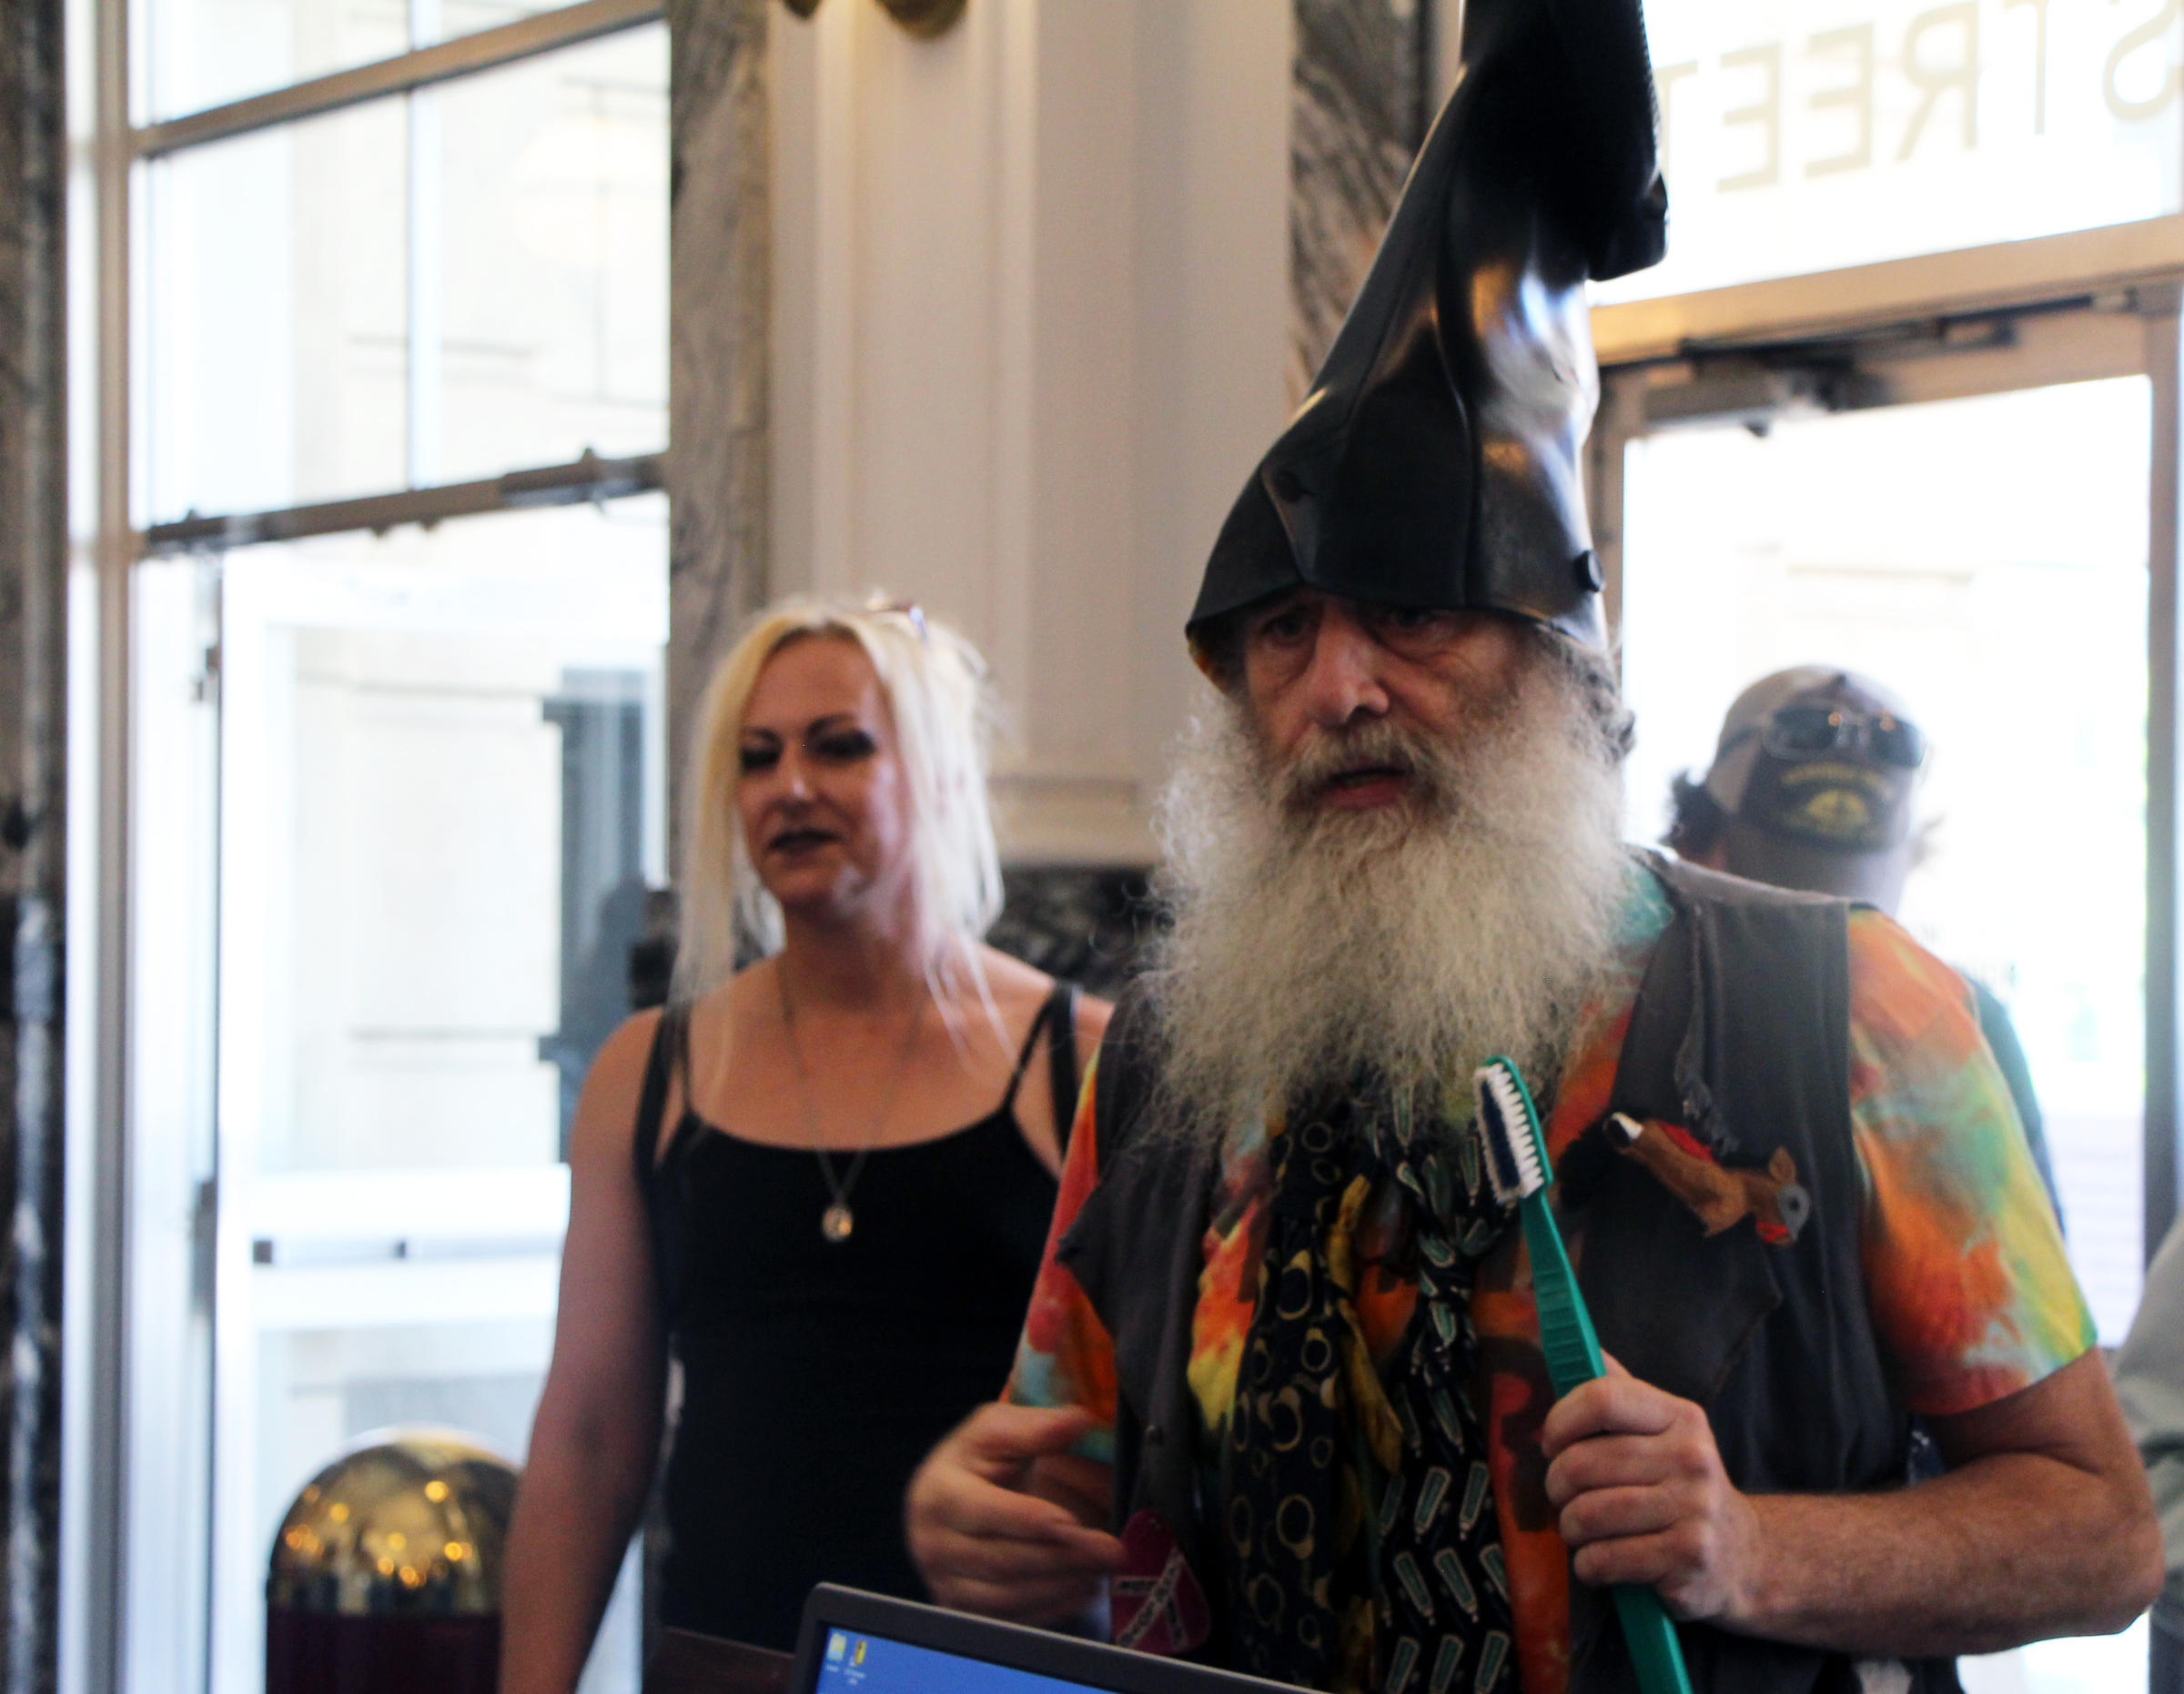 Vermin Supreme in Topeka when he filed to run for office. (Photo by the Kansas News Service)